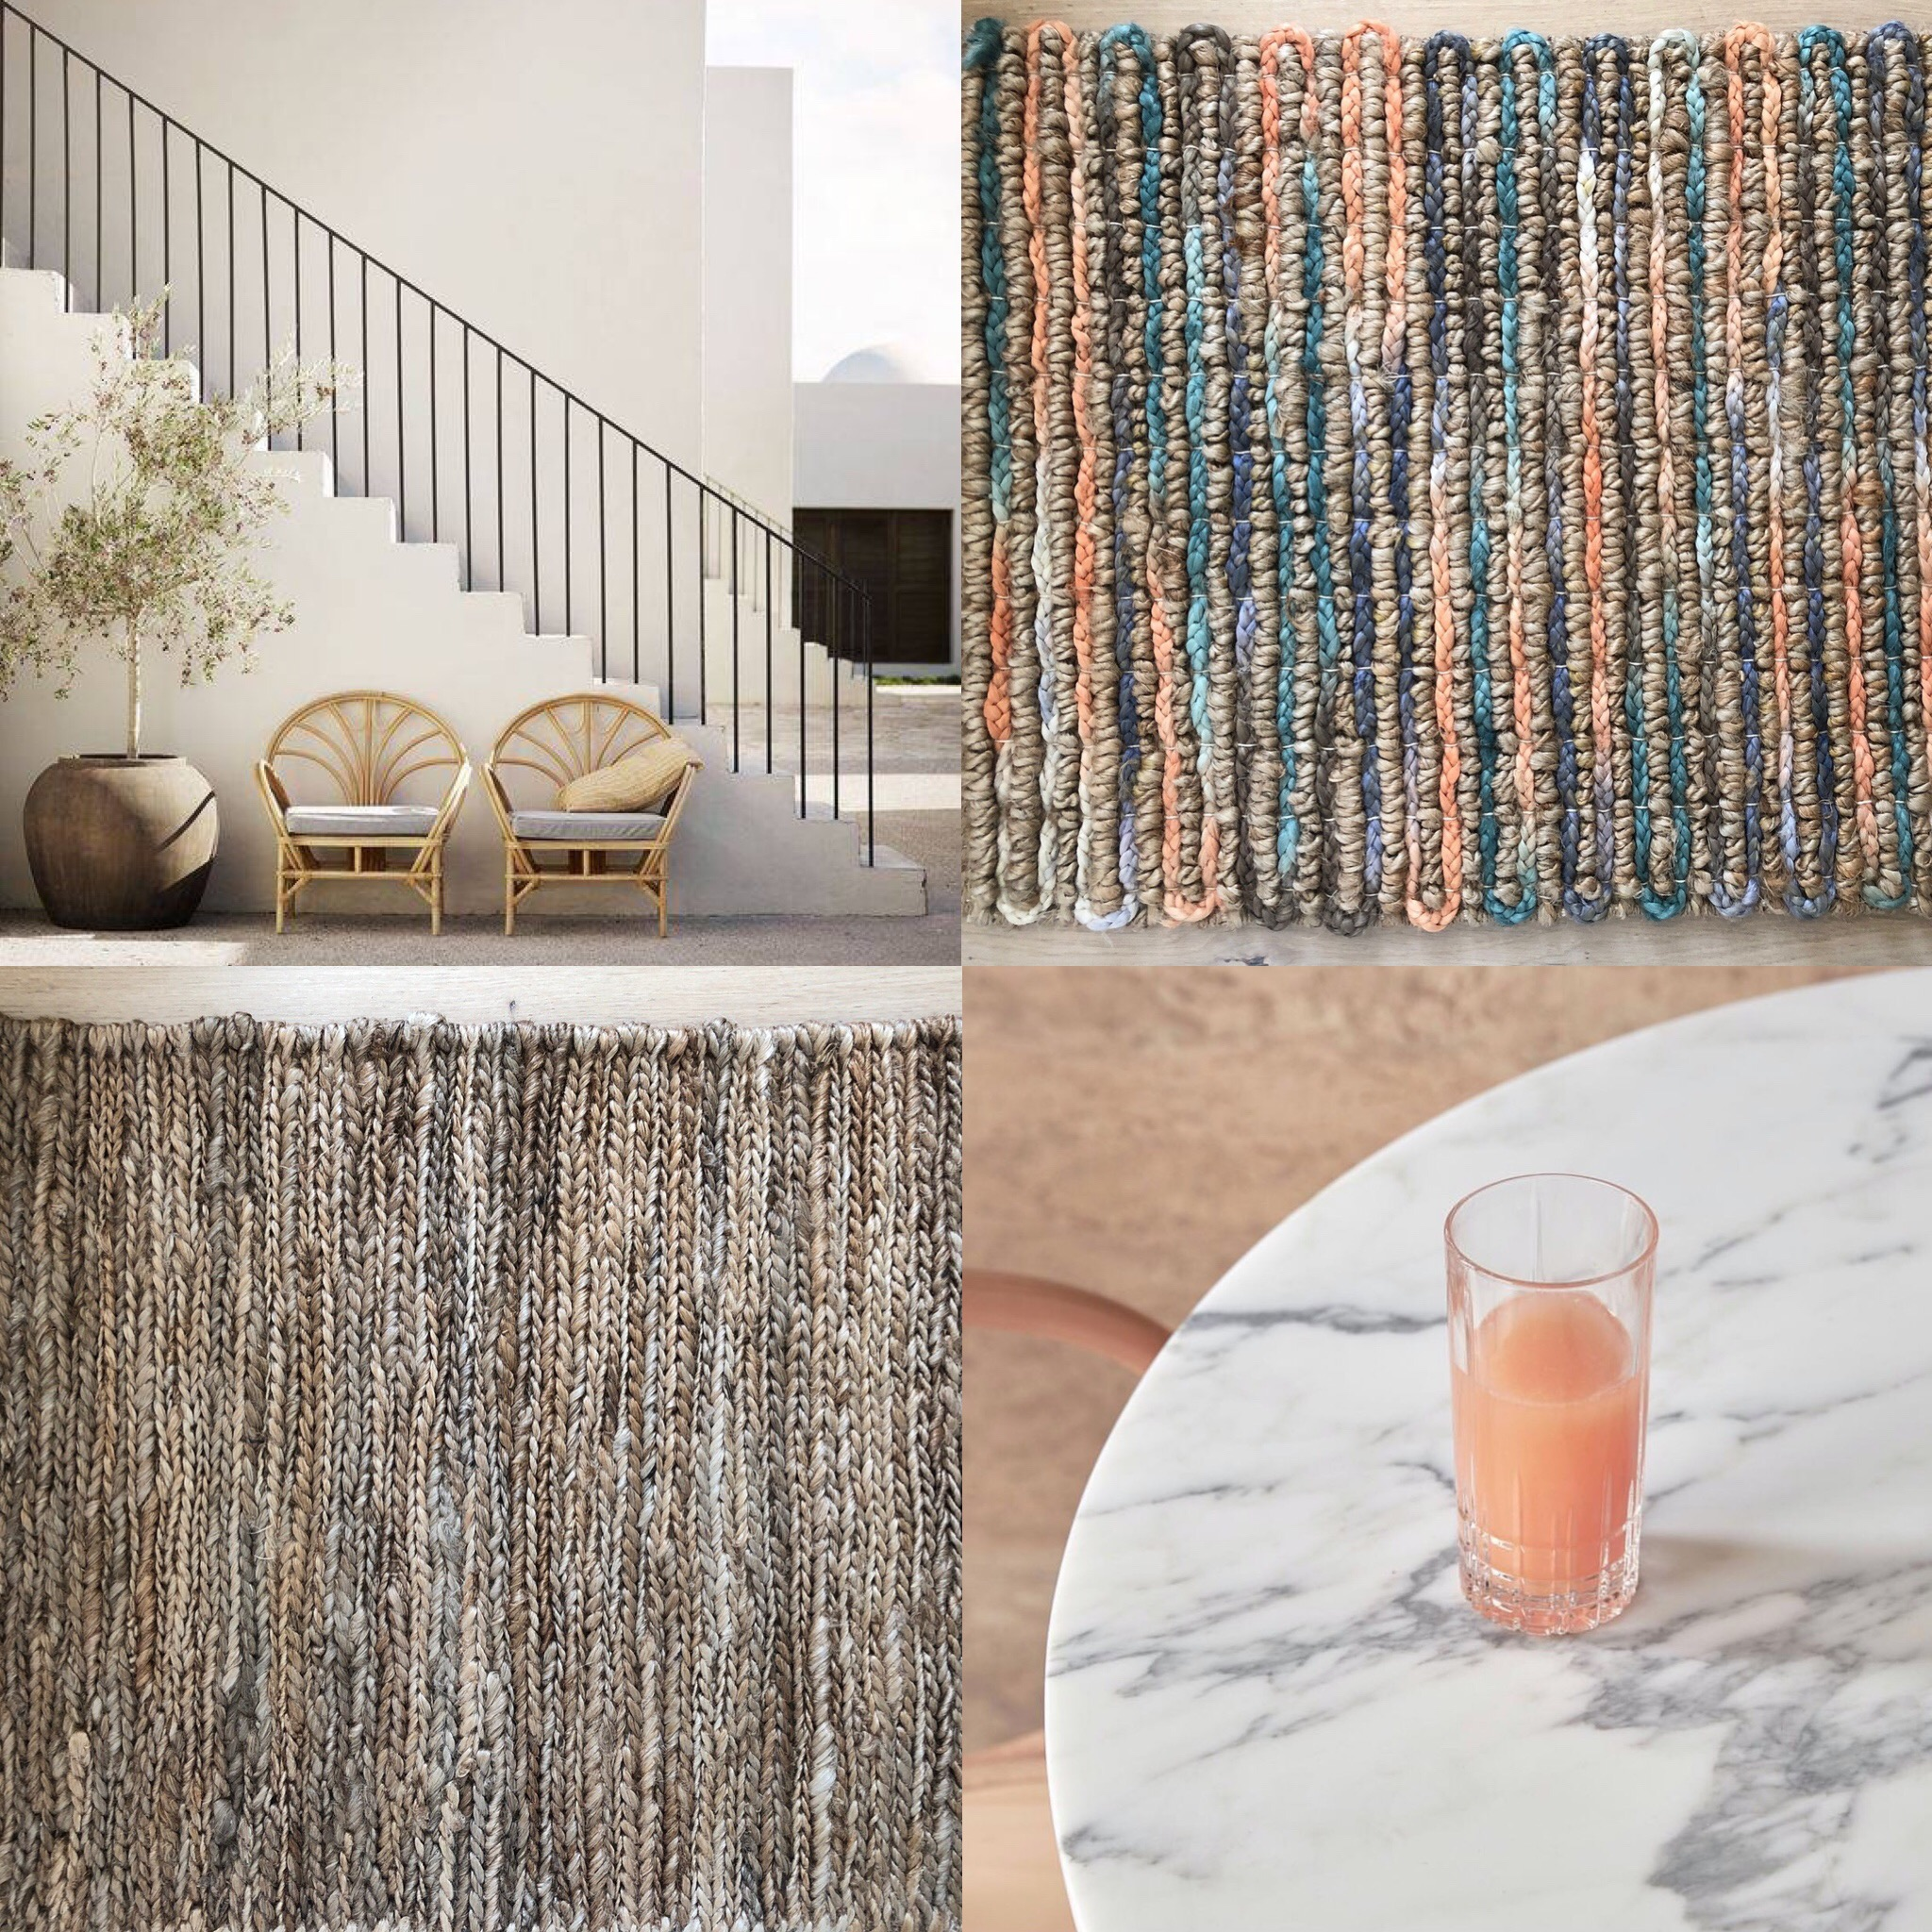 Summer moods with handwoven natural platted hemp choti rugs and sunset tones in our woven natural fibres - all rugs available to order in custom sizes. Image references are pinterest and The Calile Hotel.